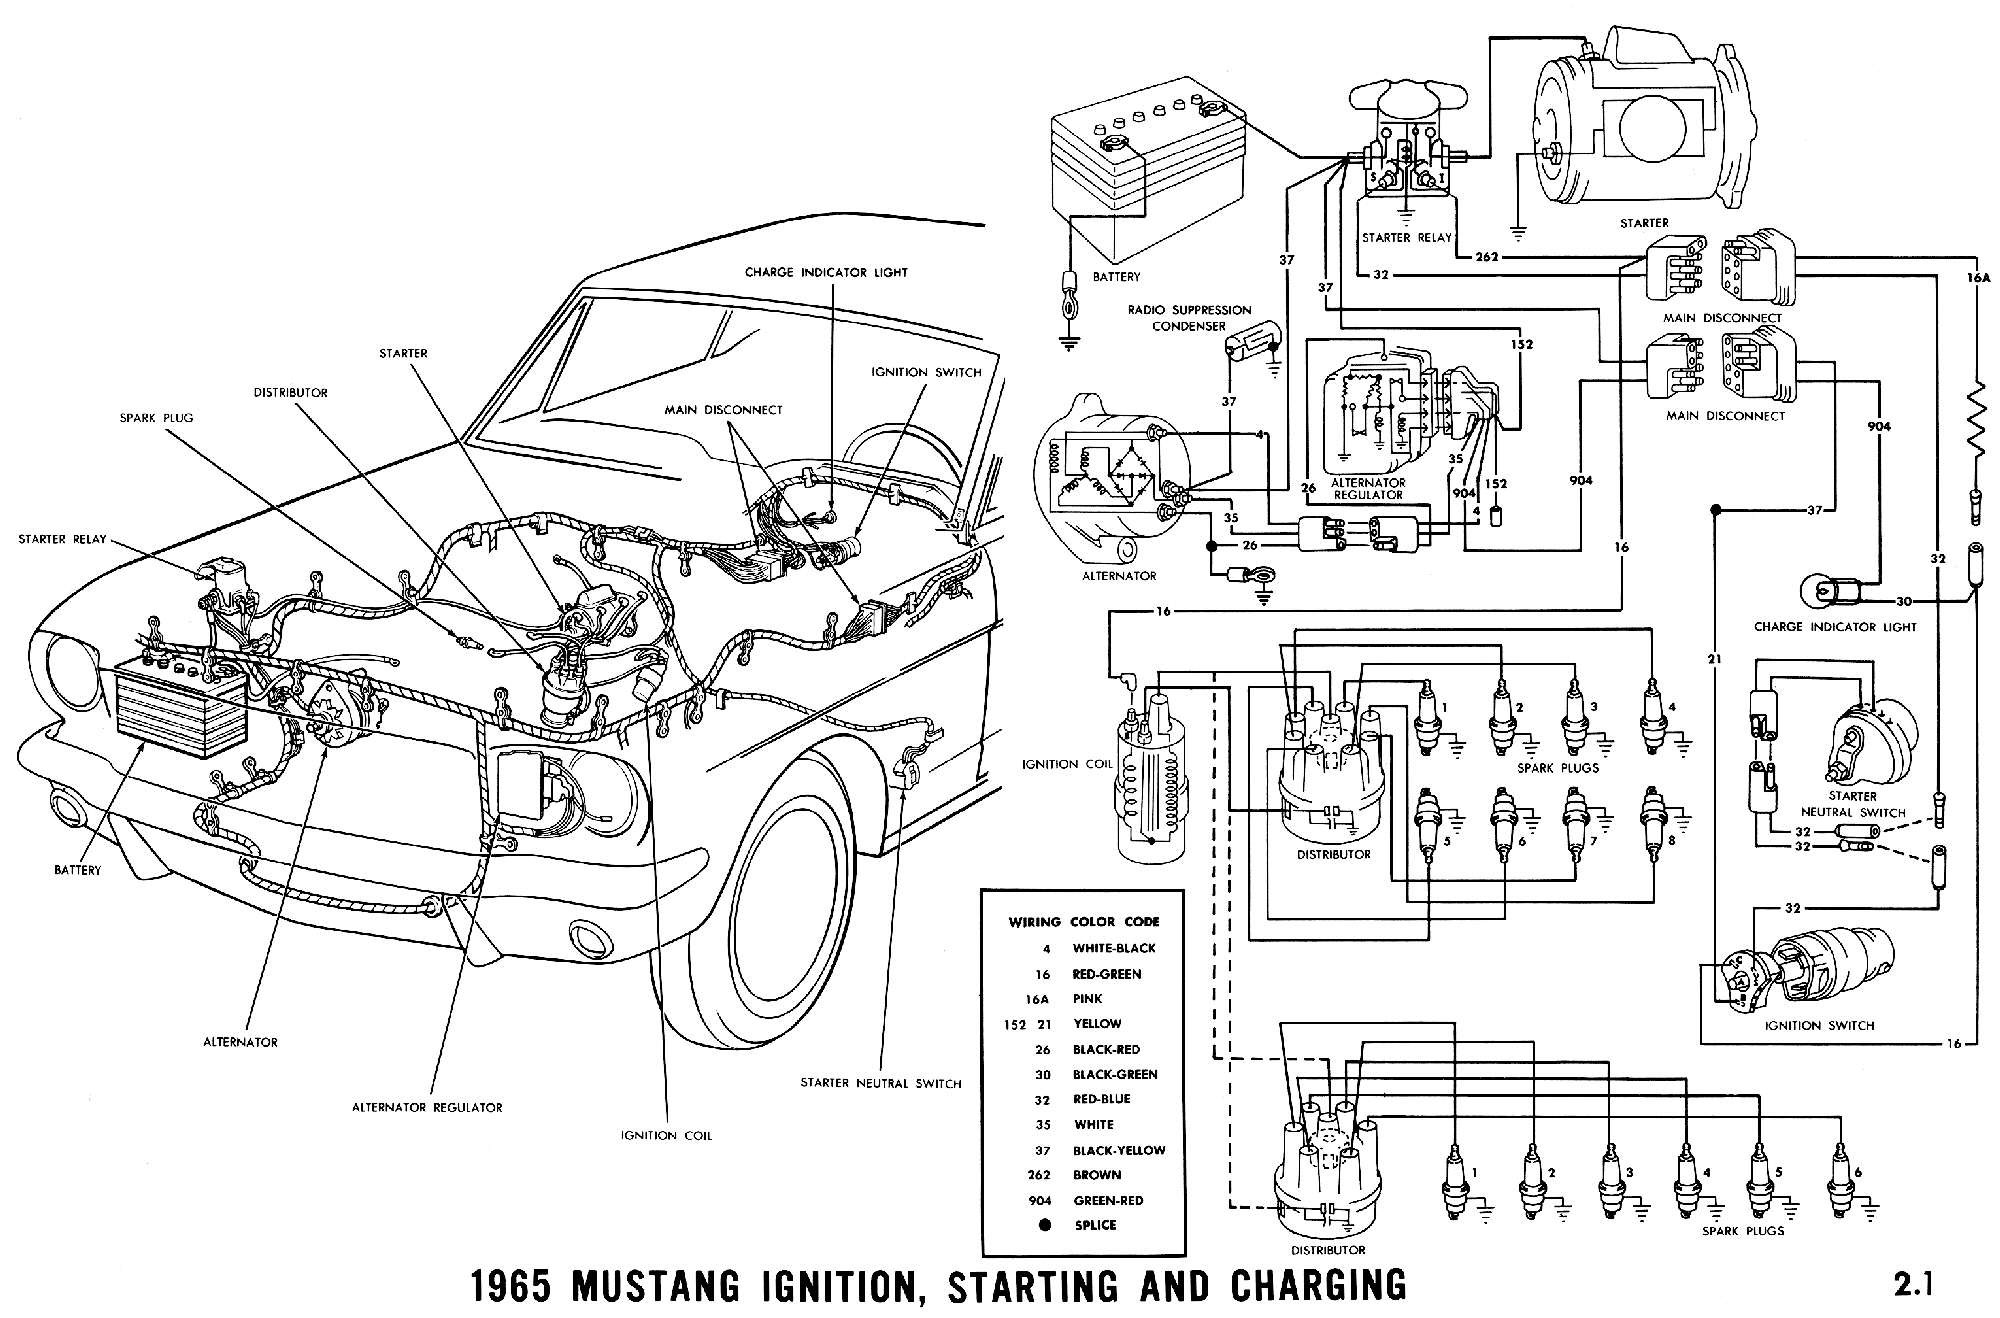 Engine Components Diagram Vehicle theft Detection Notification and ...